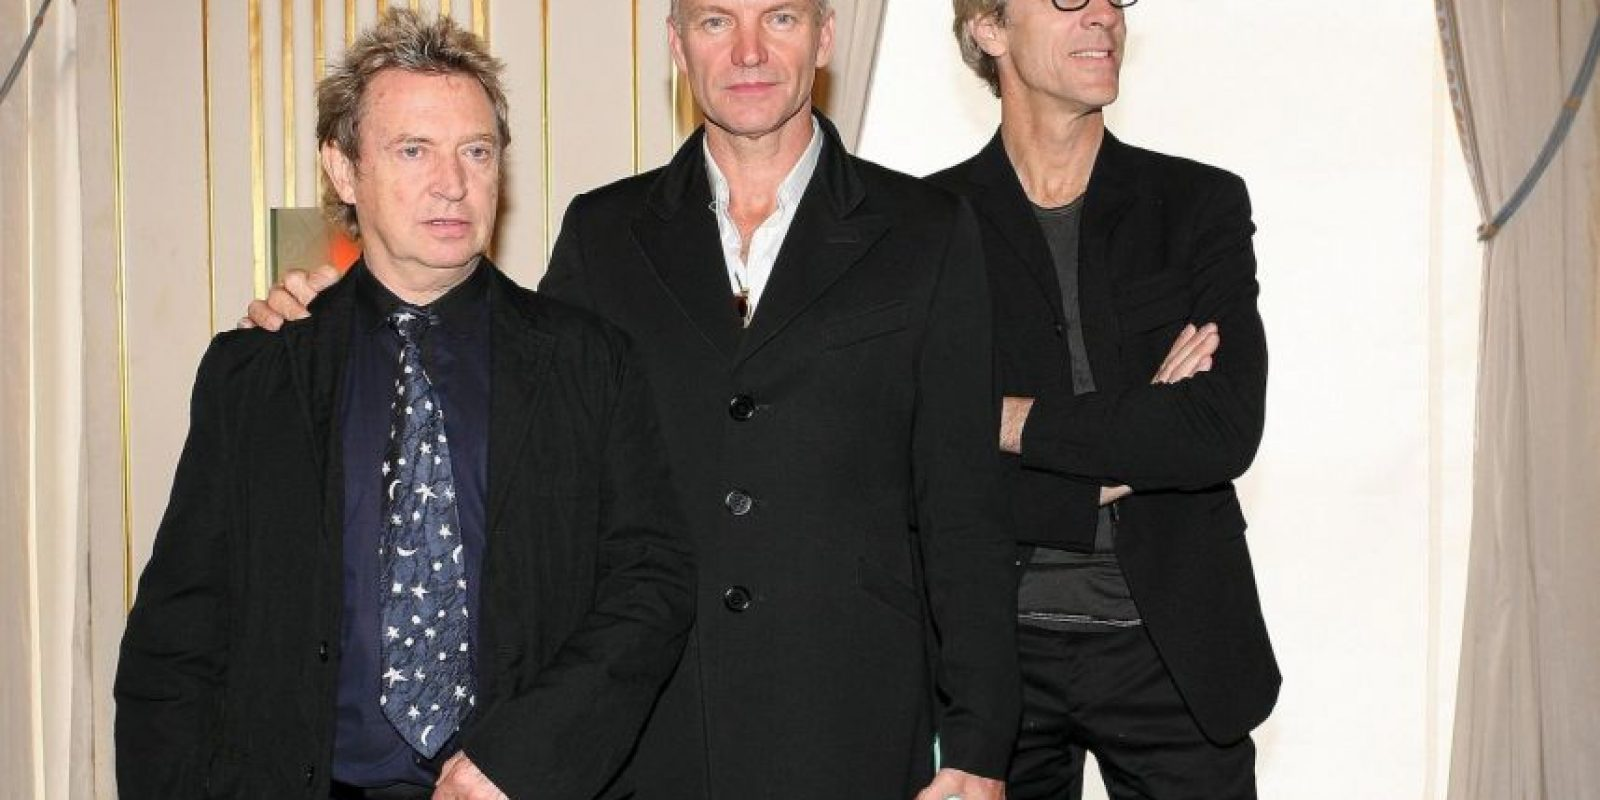 Seguida de la banda The Police. Foto: Getty Images